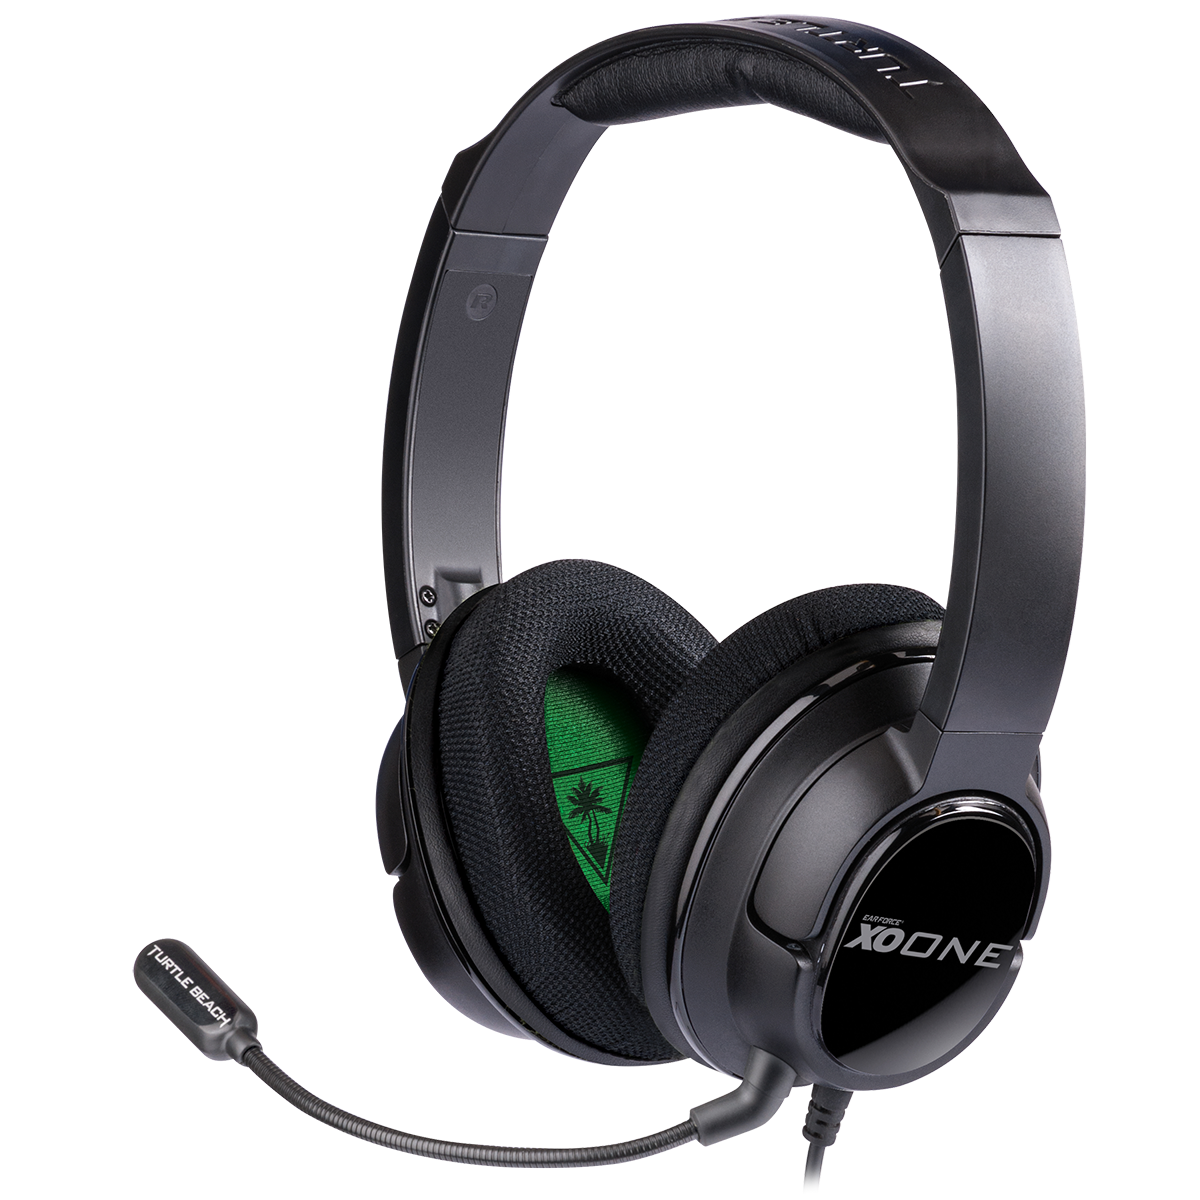 Xo One Gaming Headset Turtle Beach Us Pin Wiring Two 3 Way Motion Detector Switches On Pinterest Green